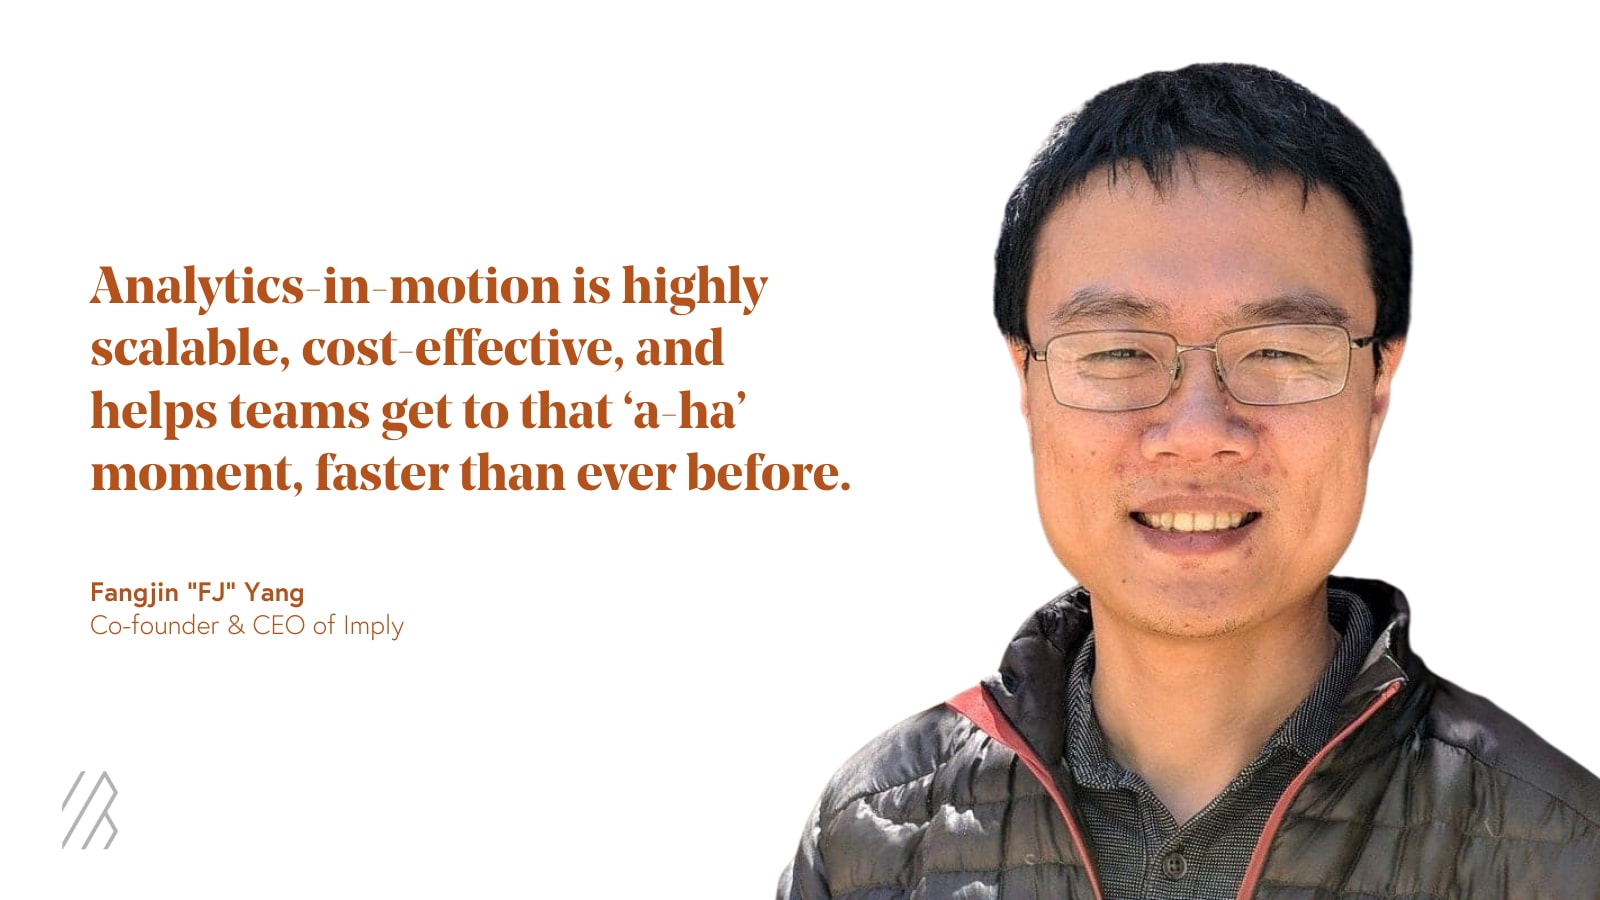 """Image of man next to quote. Text says """"analytics-in-motion is highly scalable, cost-effective, and helps teams get to that 'a-ha' moment, faster than ever before."""